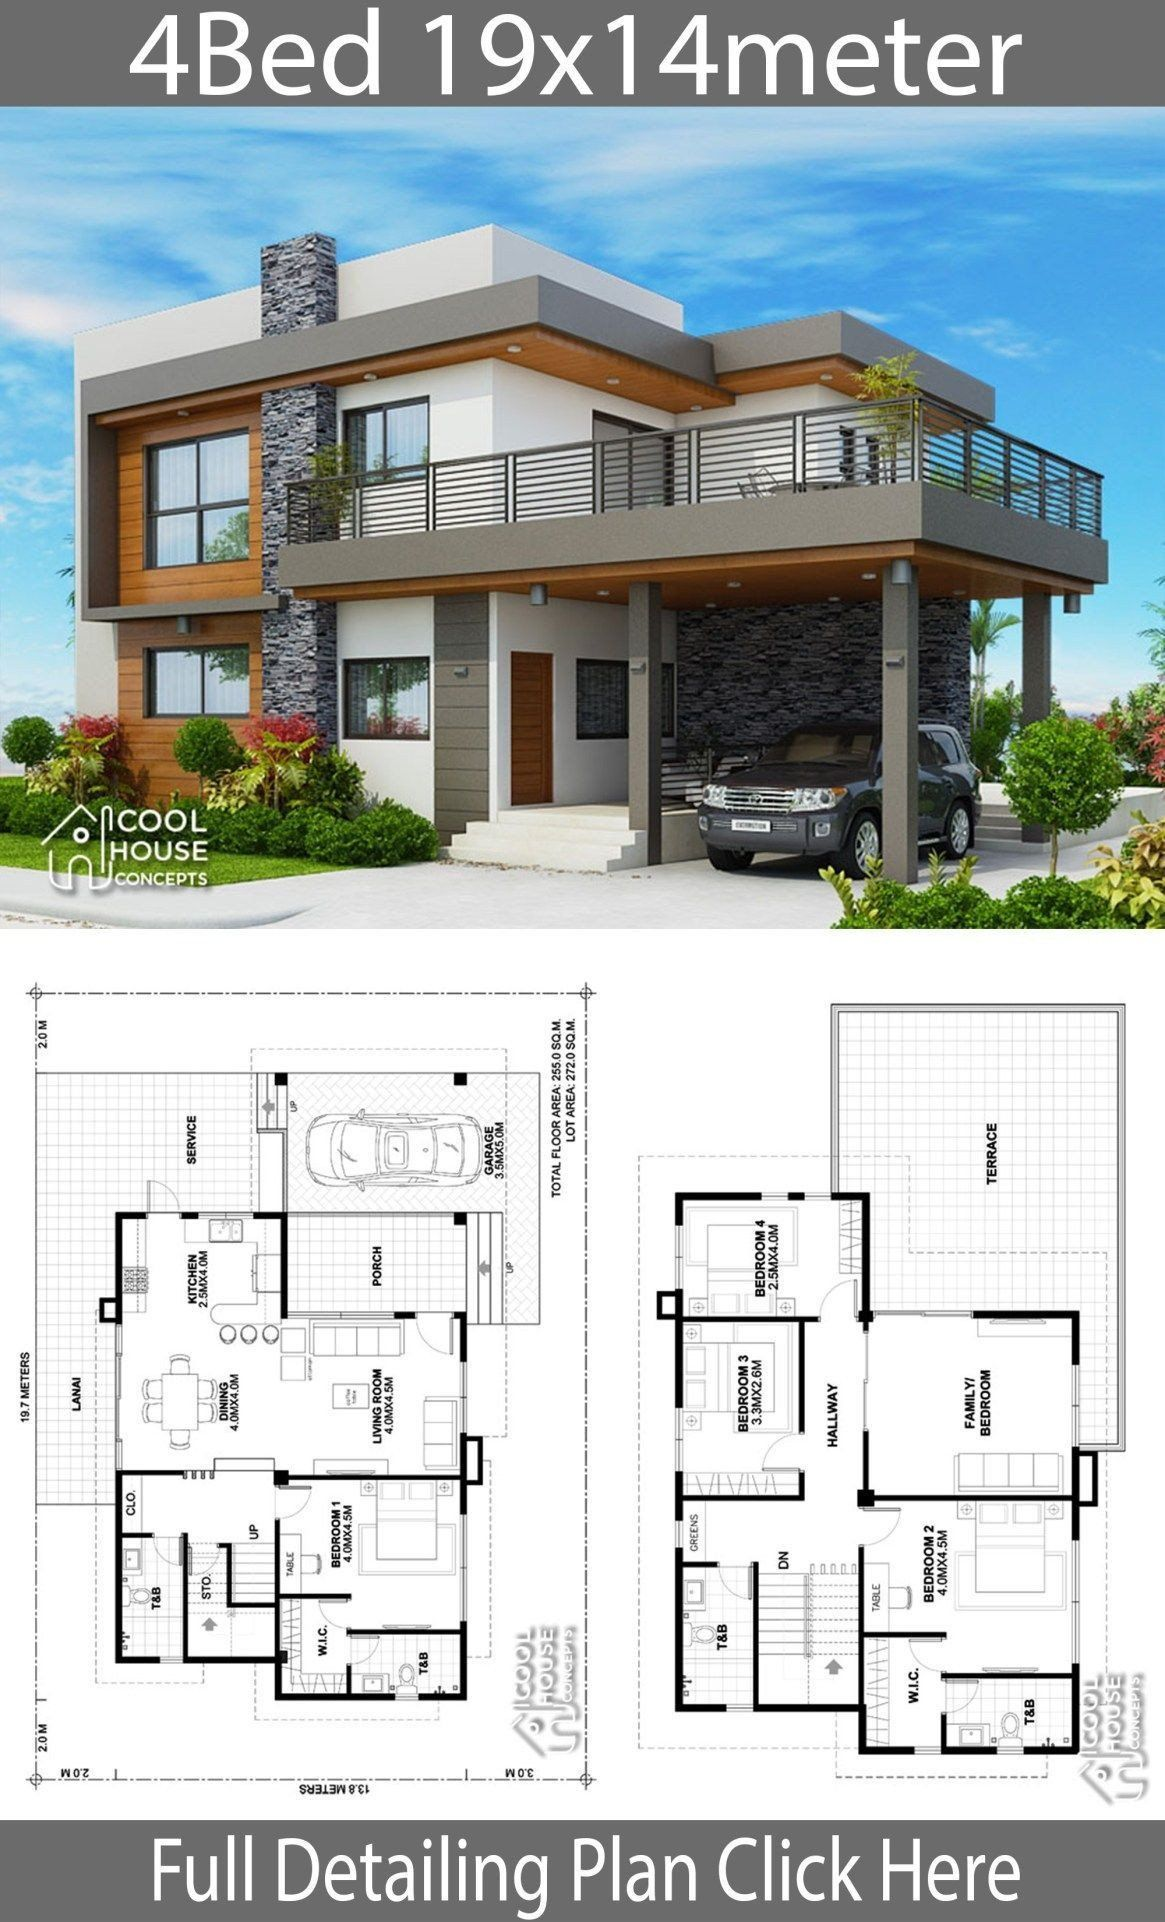 4 Bedroom Bungalow Architectural Design Lovely Home Design Plan 19x14m With 4 Bedrooms Modern House Plans Modern House Floor Plans Duplex House Design